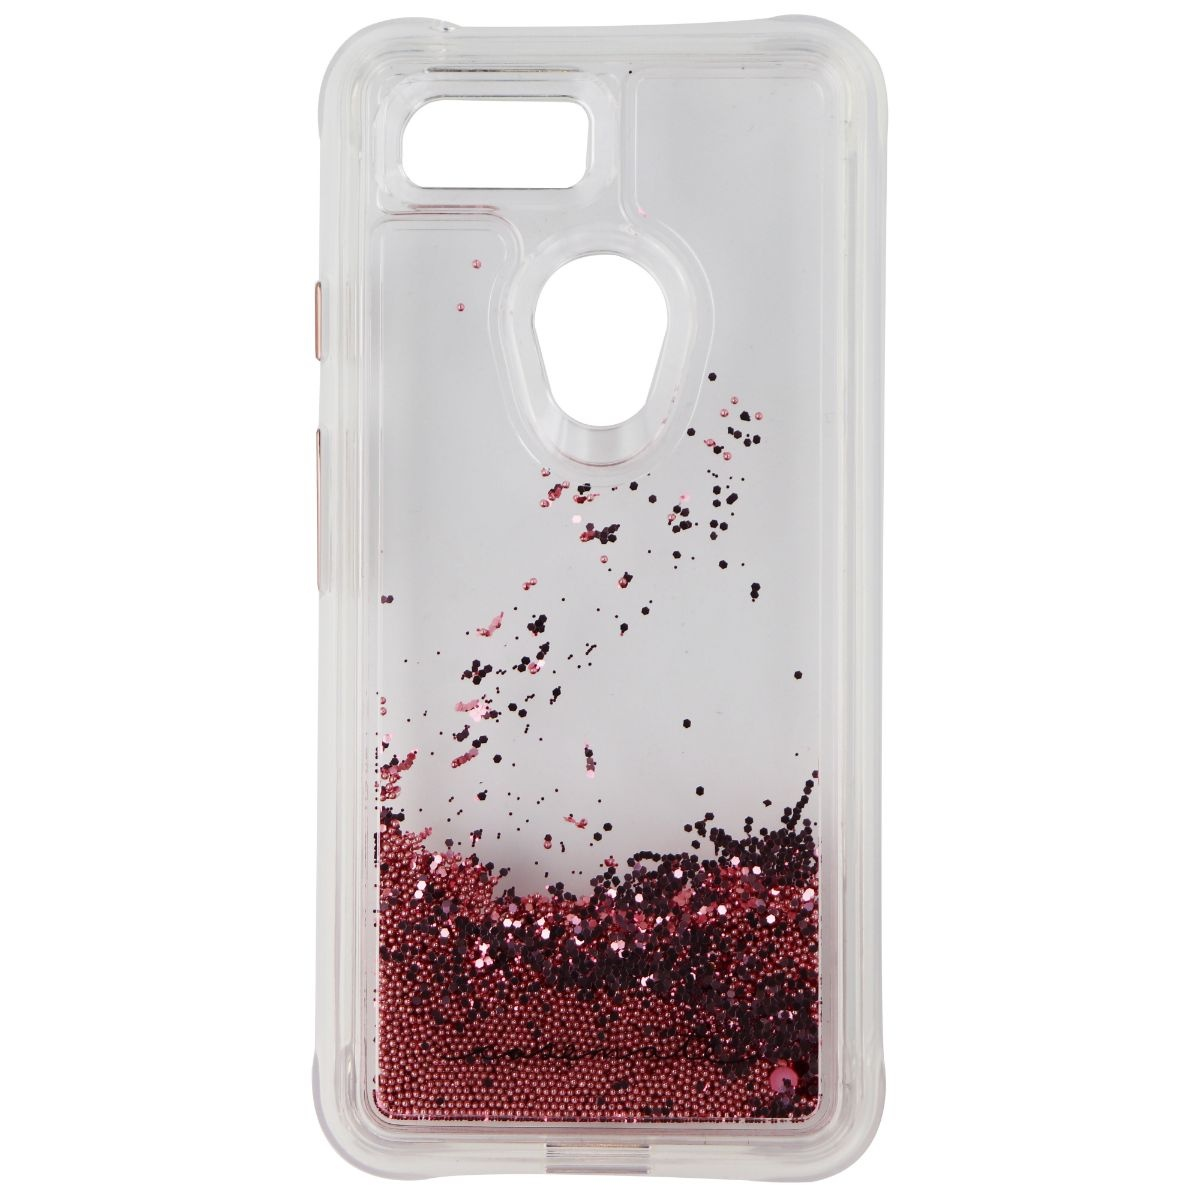 Case-mate CM037424 Waterfall Case for Google Pixel 3 - Rose Gold